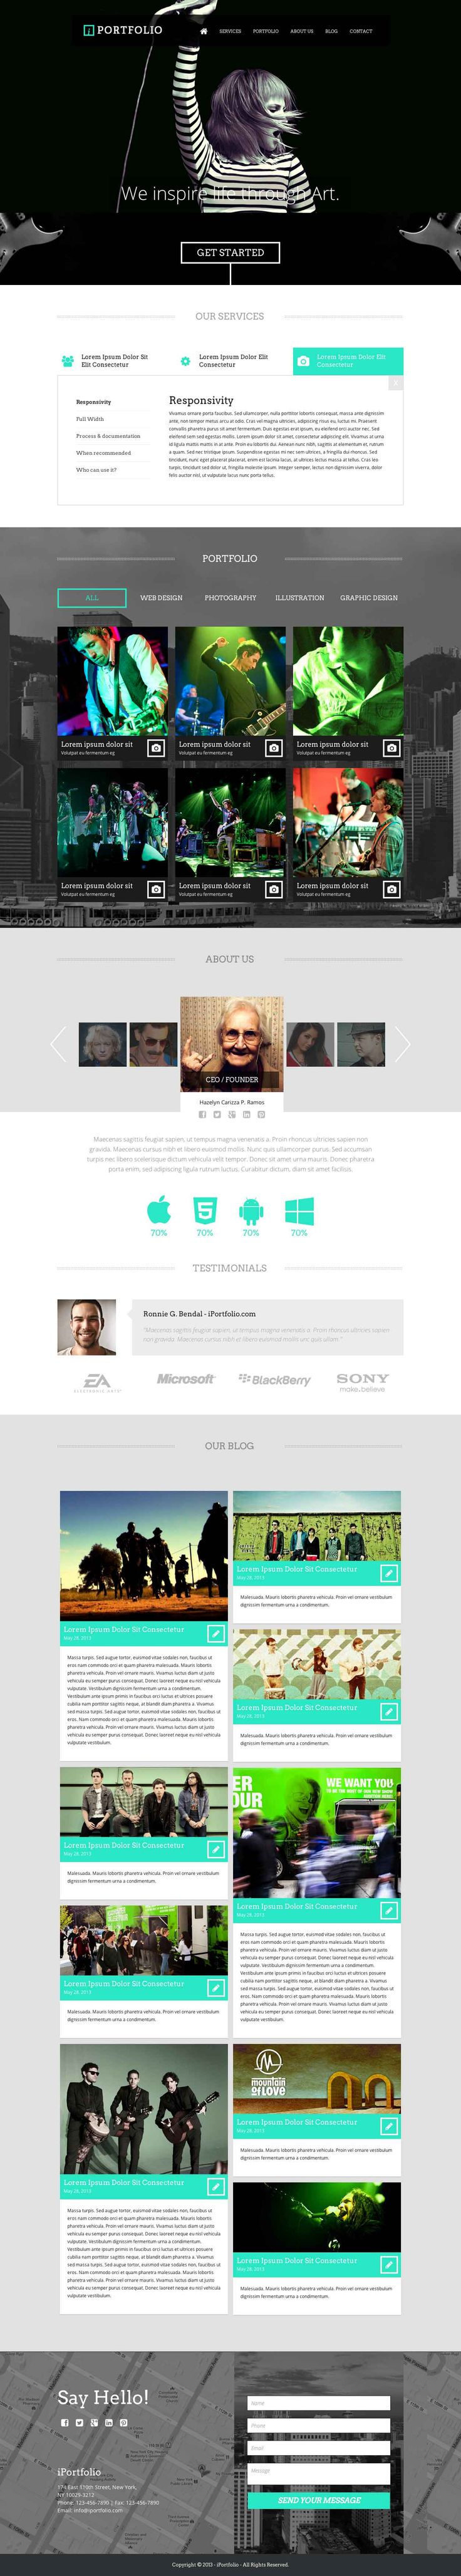 iPortfolio is a unique one page template, it is a perfect option for creating website that related to photography, creative agency, portfolio, music and band, freelance.  #webdesign #it #web #design #layout #userinterface #website #webdesign #design #webdesign #template #web #graphic #psd #photoshop #website #theme